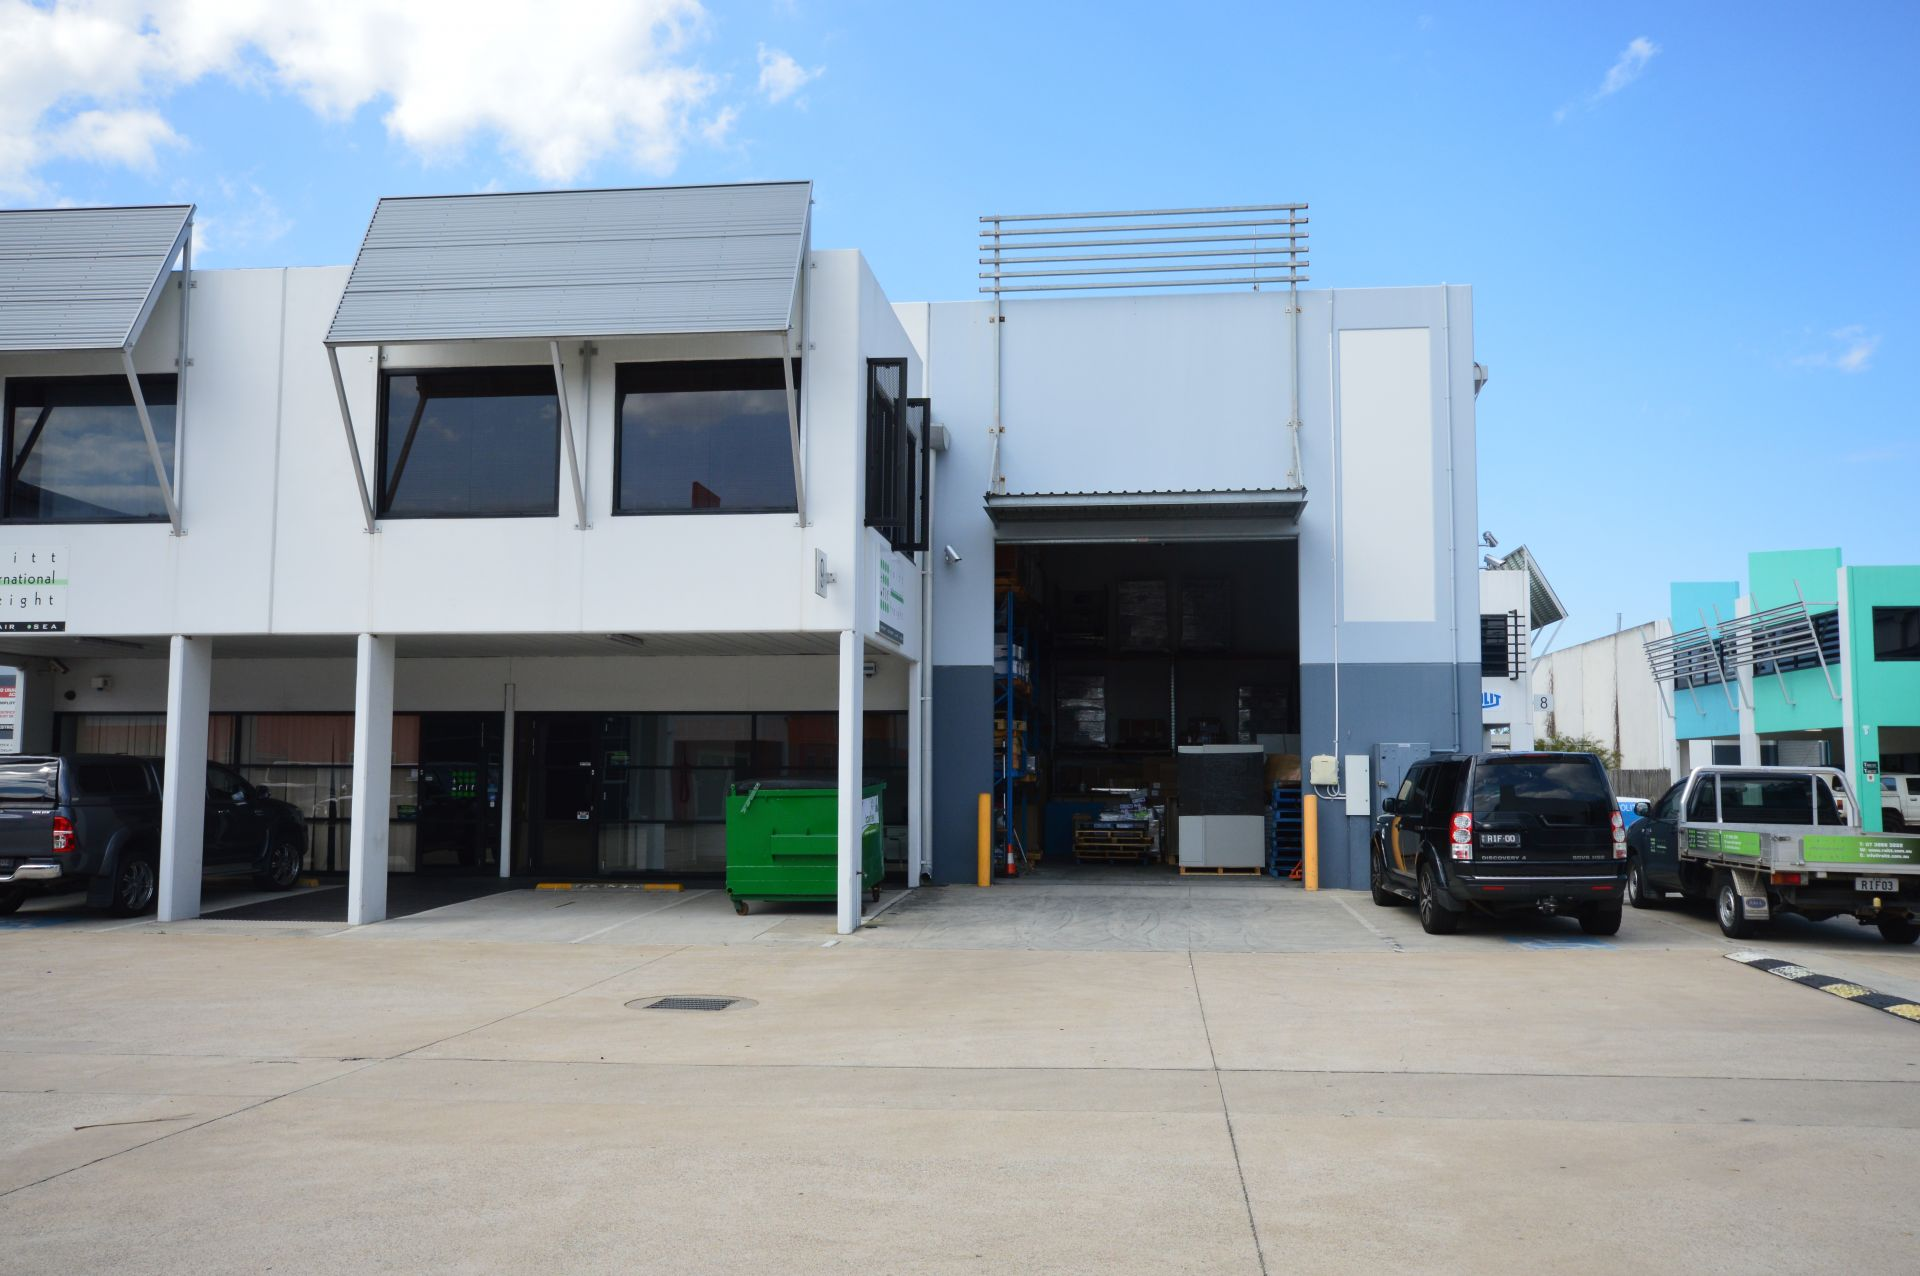 Modern Eagle Farm Unit – Occupy or Invest